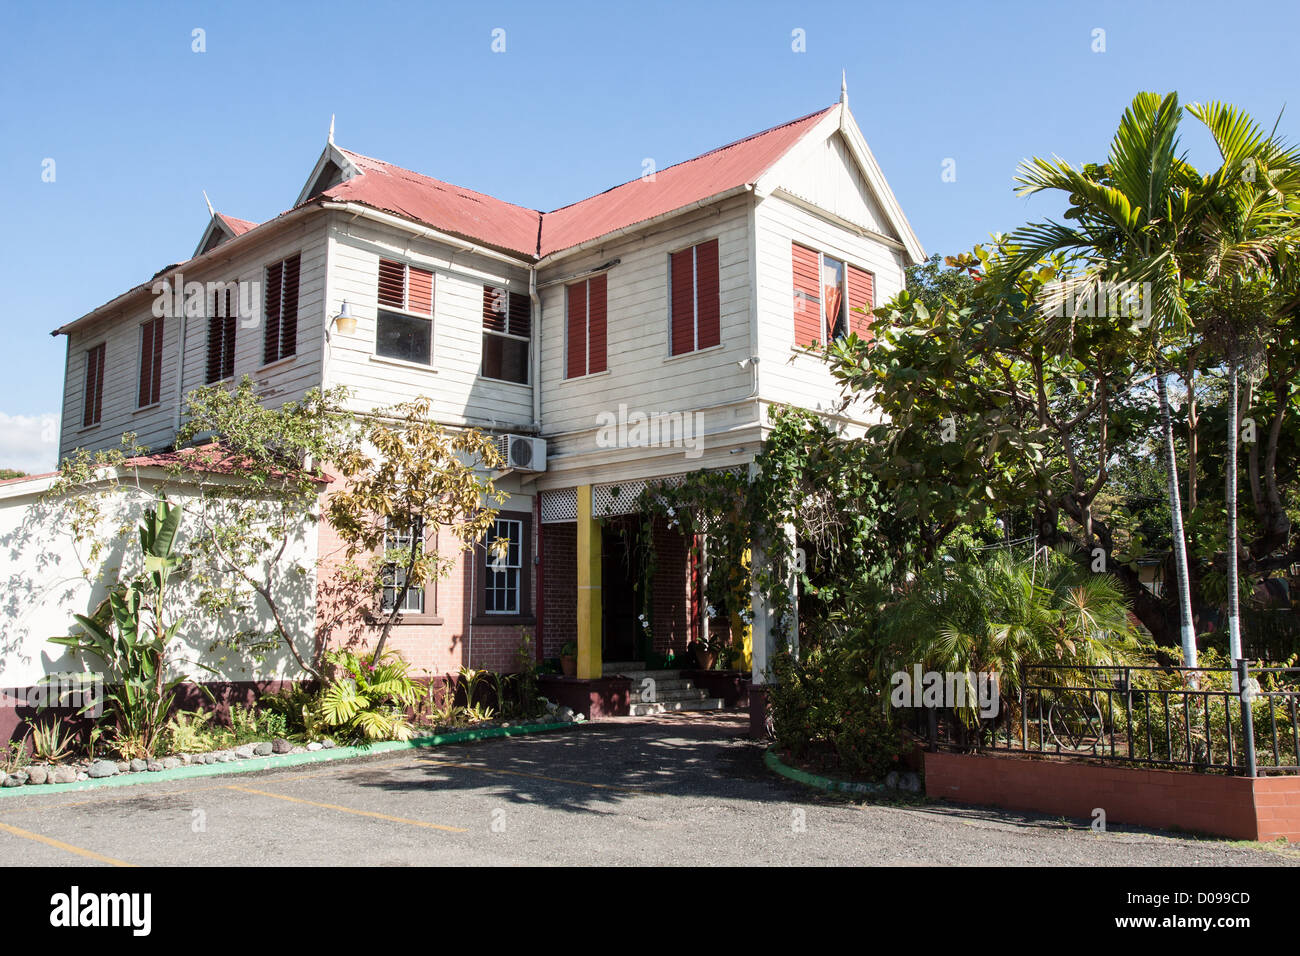 THE HOME OF BOB MARLEY (1945-1981) JAMAICAN REGGAE MUSICIAN TODAY TURNED INTO A MUSEUM KINGSTON JAMAICA THE CARIBBEAN - Stock Image